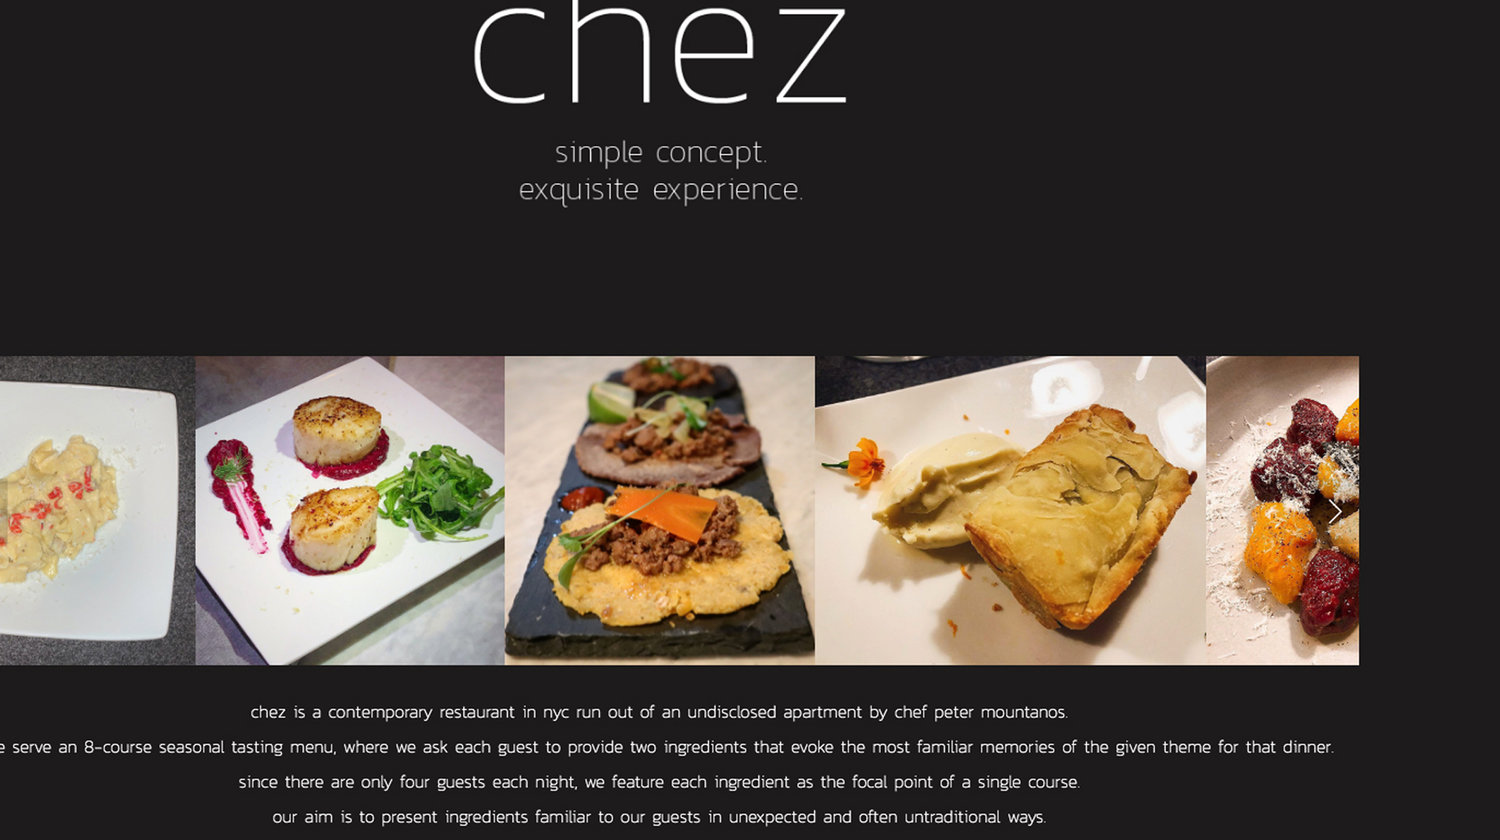 Chez, a part-time business owned by board candidate Peter Mountanos, that operates sporadically out of his New York City apartment.